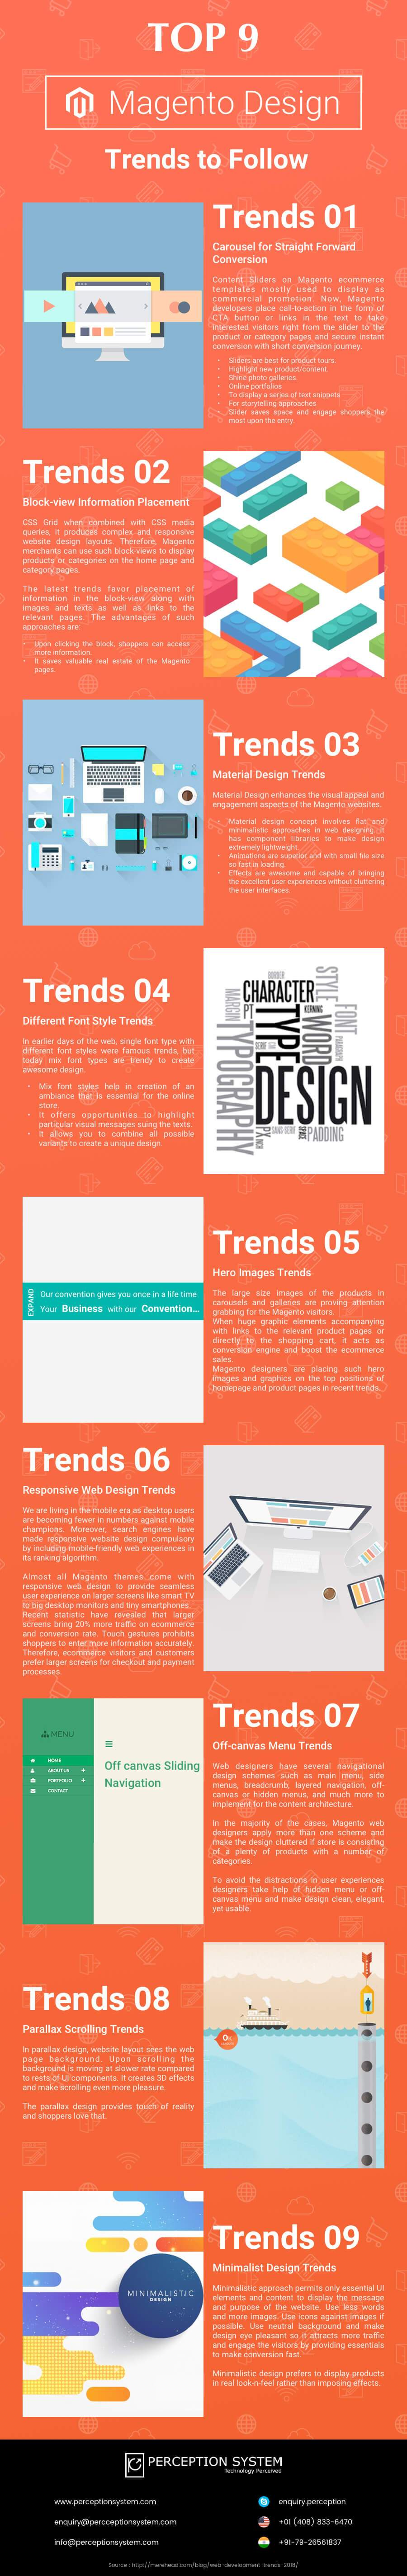 https://www.infographicportal.com/wp-content/uploads/2018/03/Top-9-Magento-Design-Trends-to-Follow.jpg